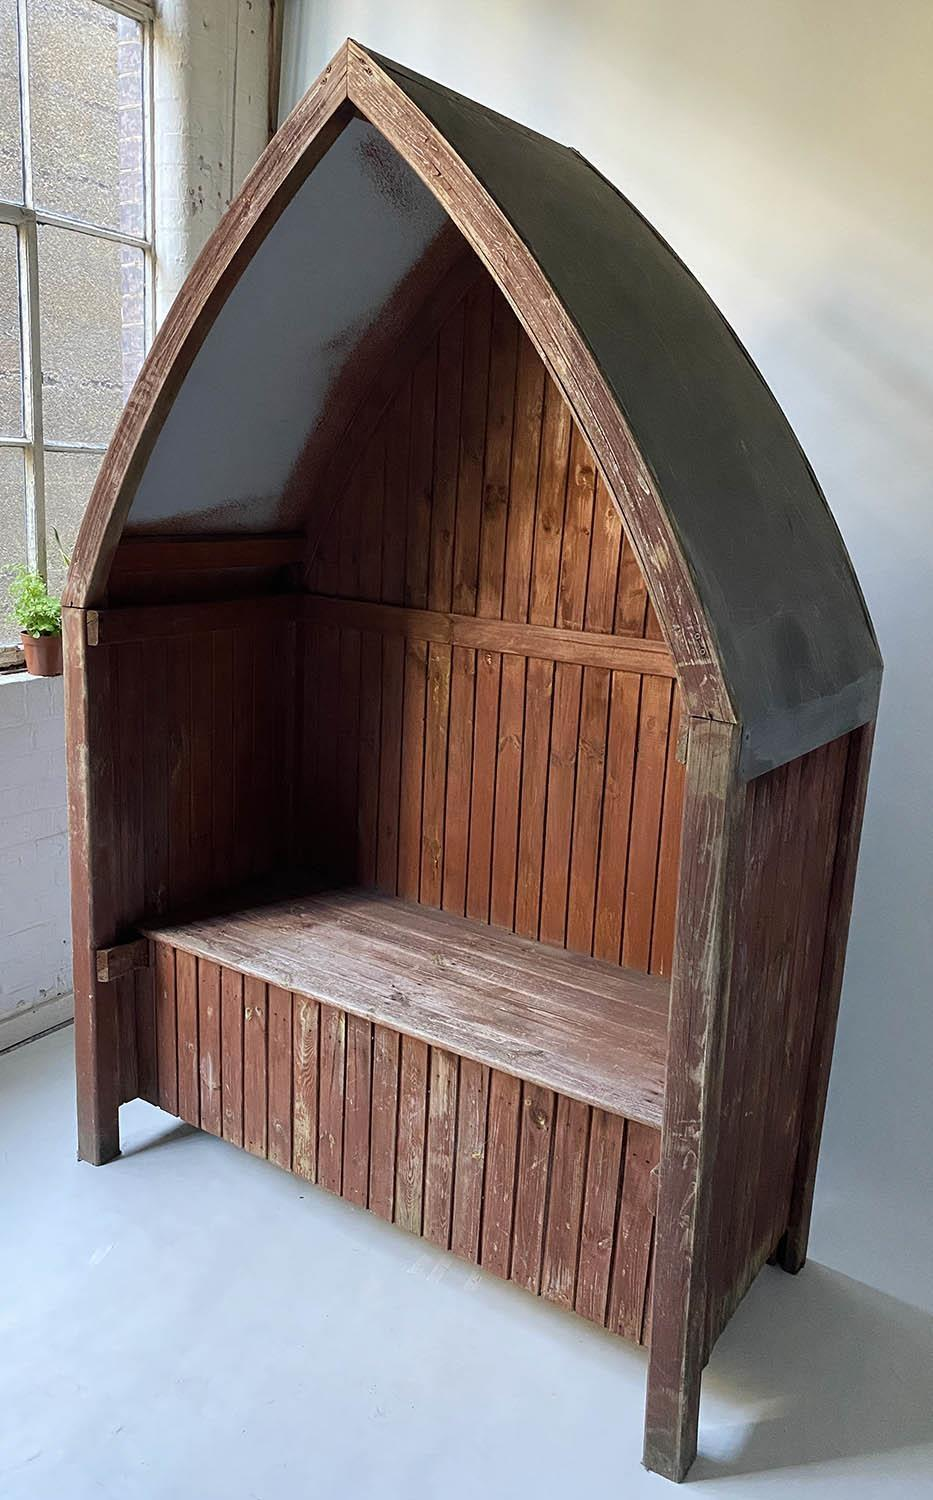 GAZEBO, vintage boarded with rising seat and arched galvanised roof, 140cm x 67cm x 209cm H.